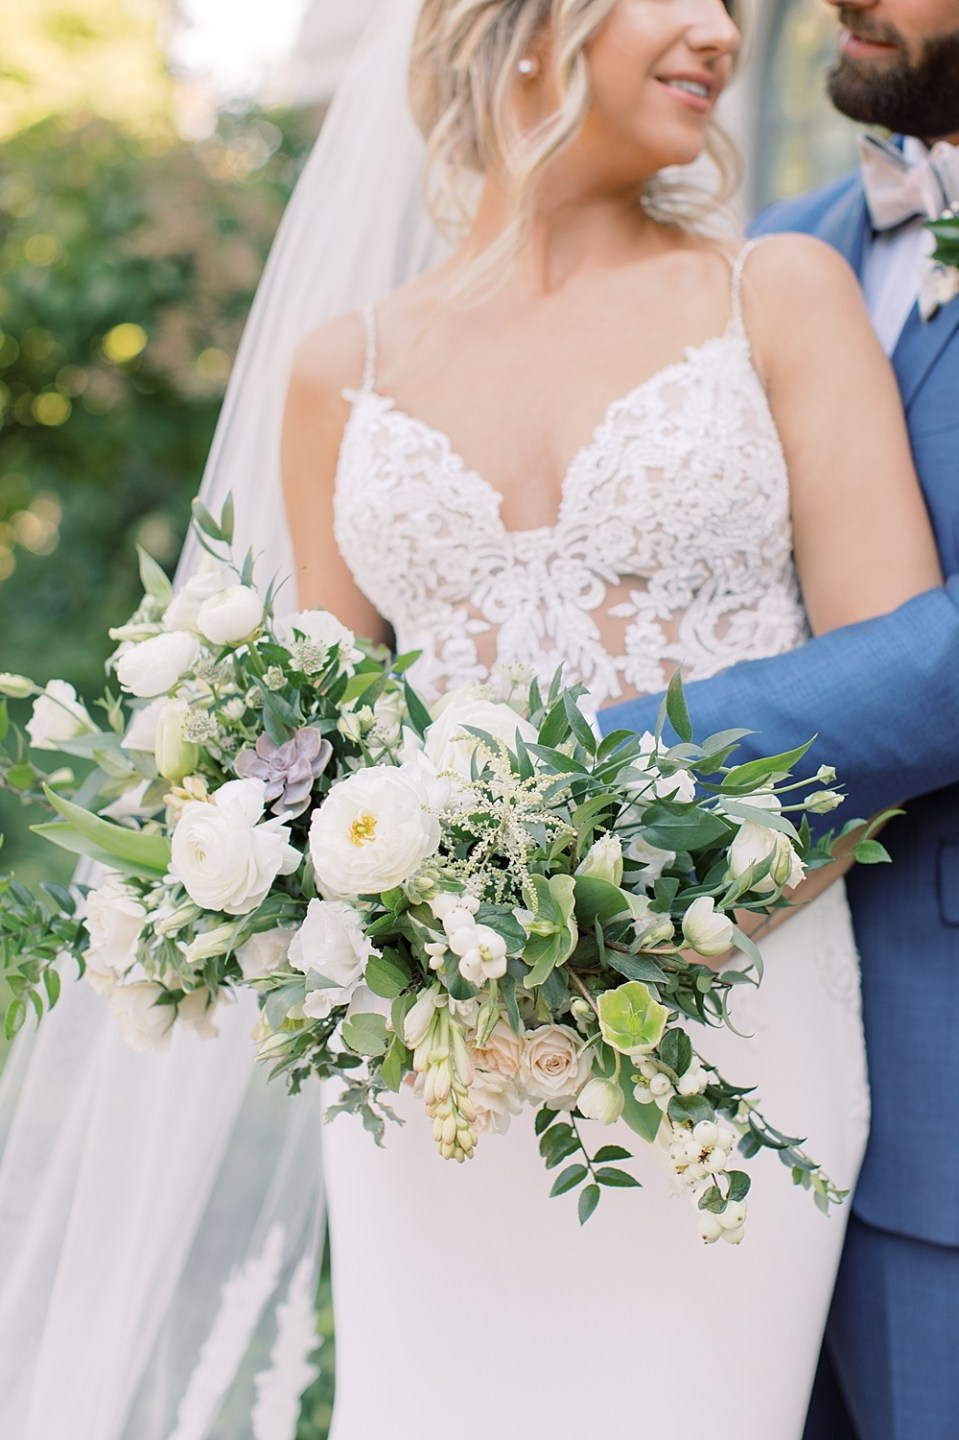 whisper and brook flower co | white and blush bridal bouquet | ashford estate wedding photographer sarah canning photography